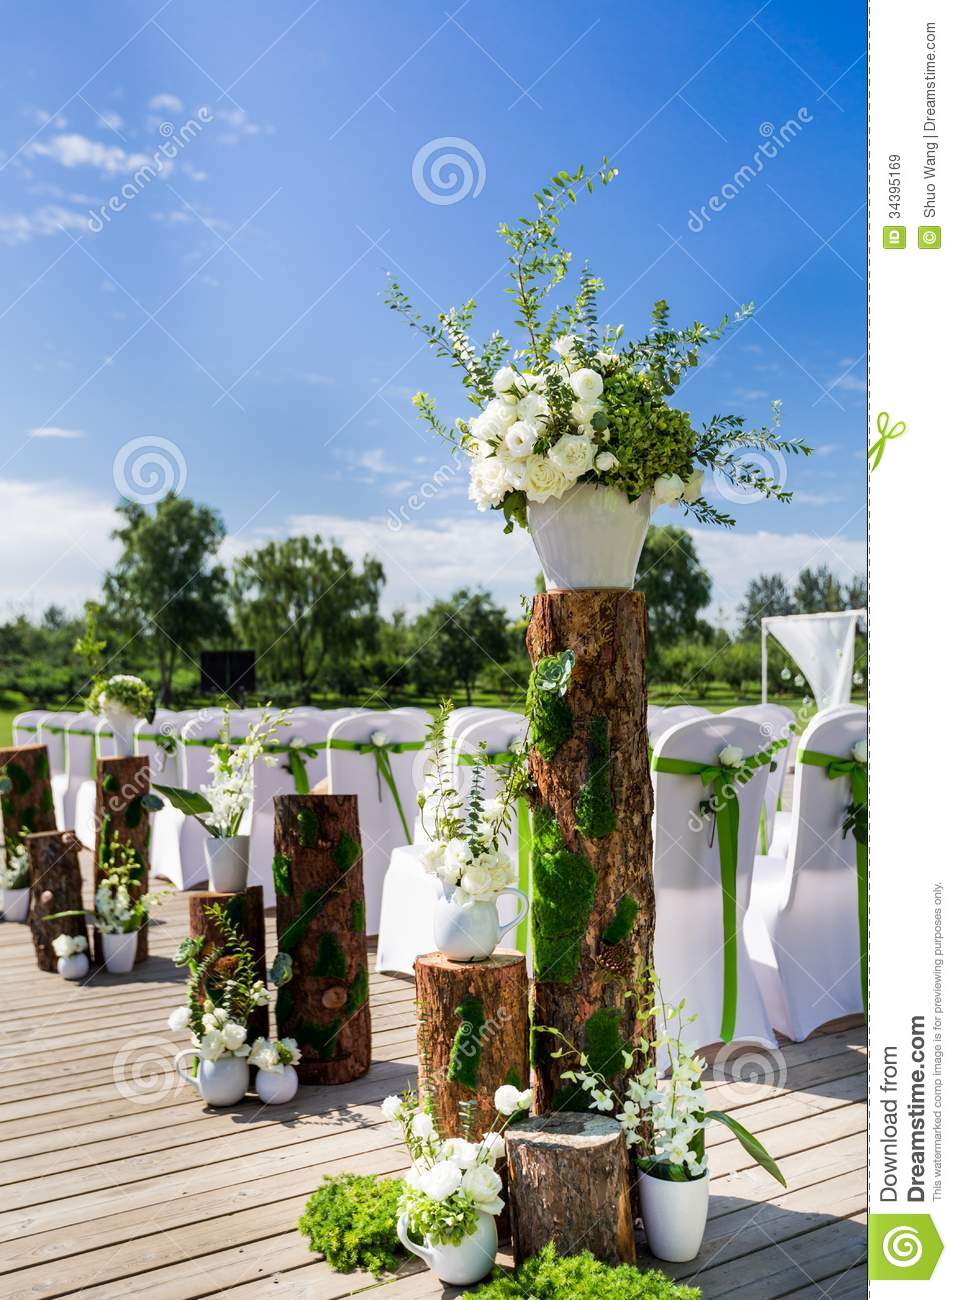 Outdoor Wedding Scene Stock Image Image Of Grass Beauty